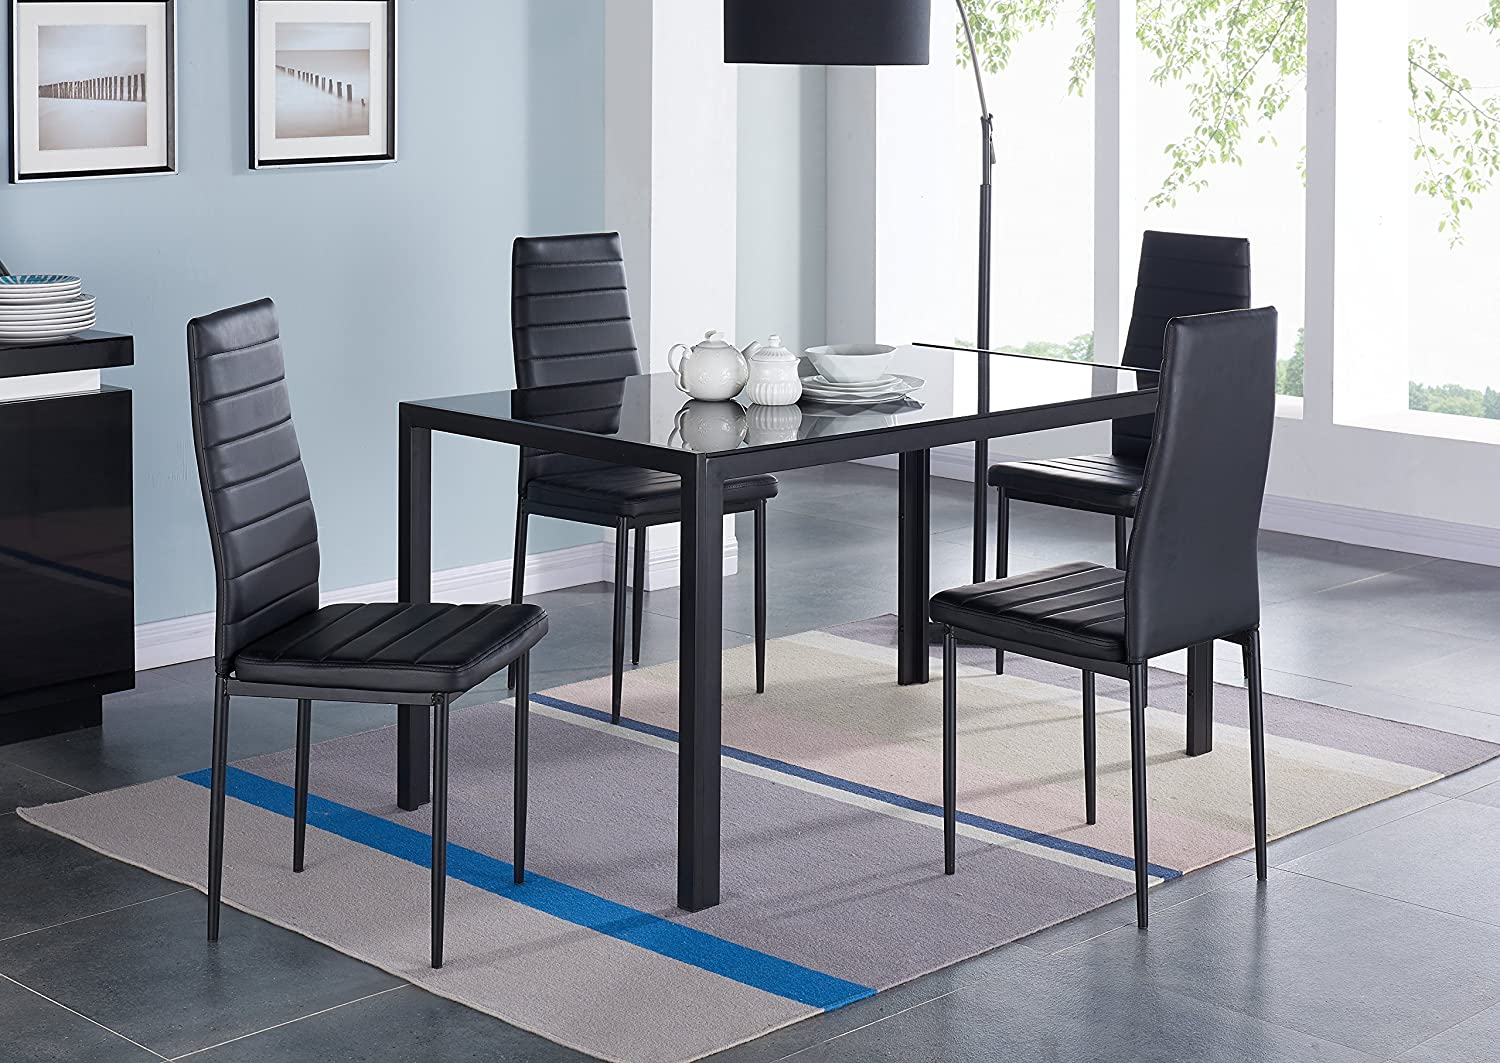 Excellent Ids 5 Piece Compact Dining Table Room Set For 4 With Glass Top And Soft Faux Leather Chairs Dinette Rectangular Black Home Interior And Landscaping Mentranervesignezvosmurscom